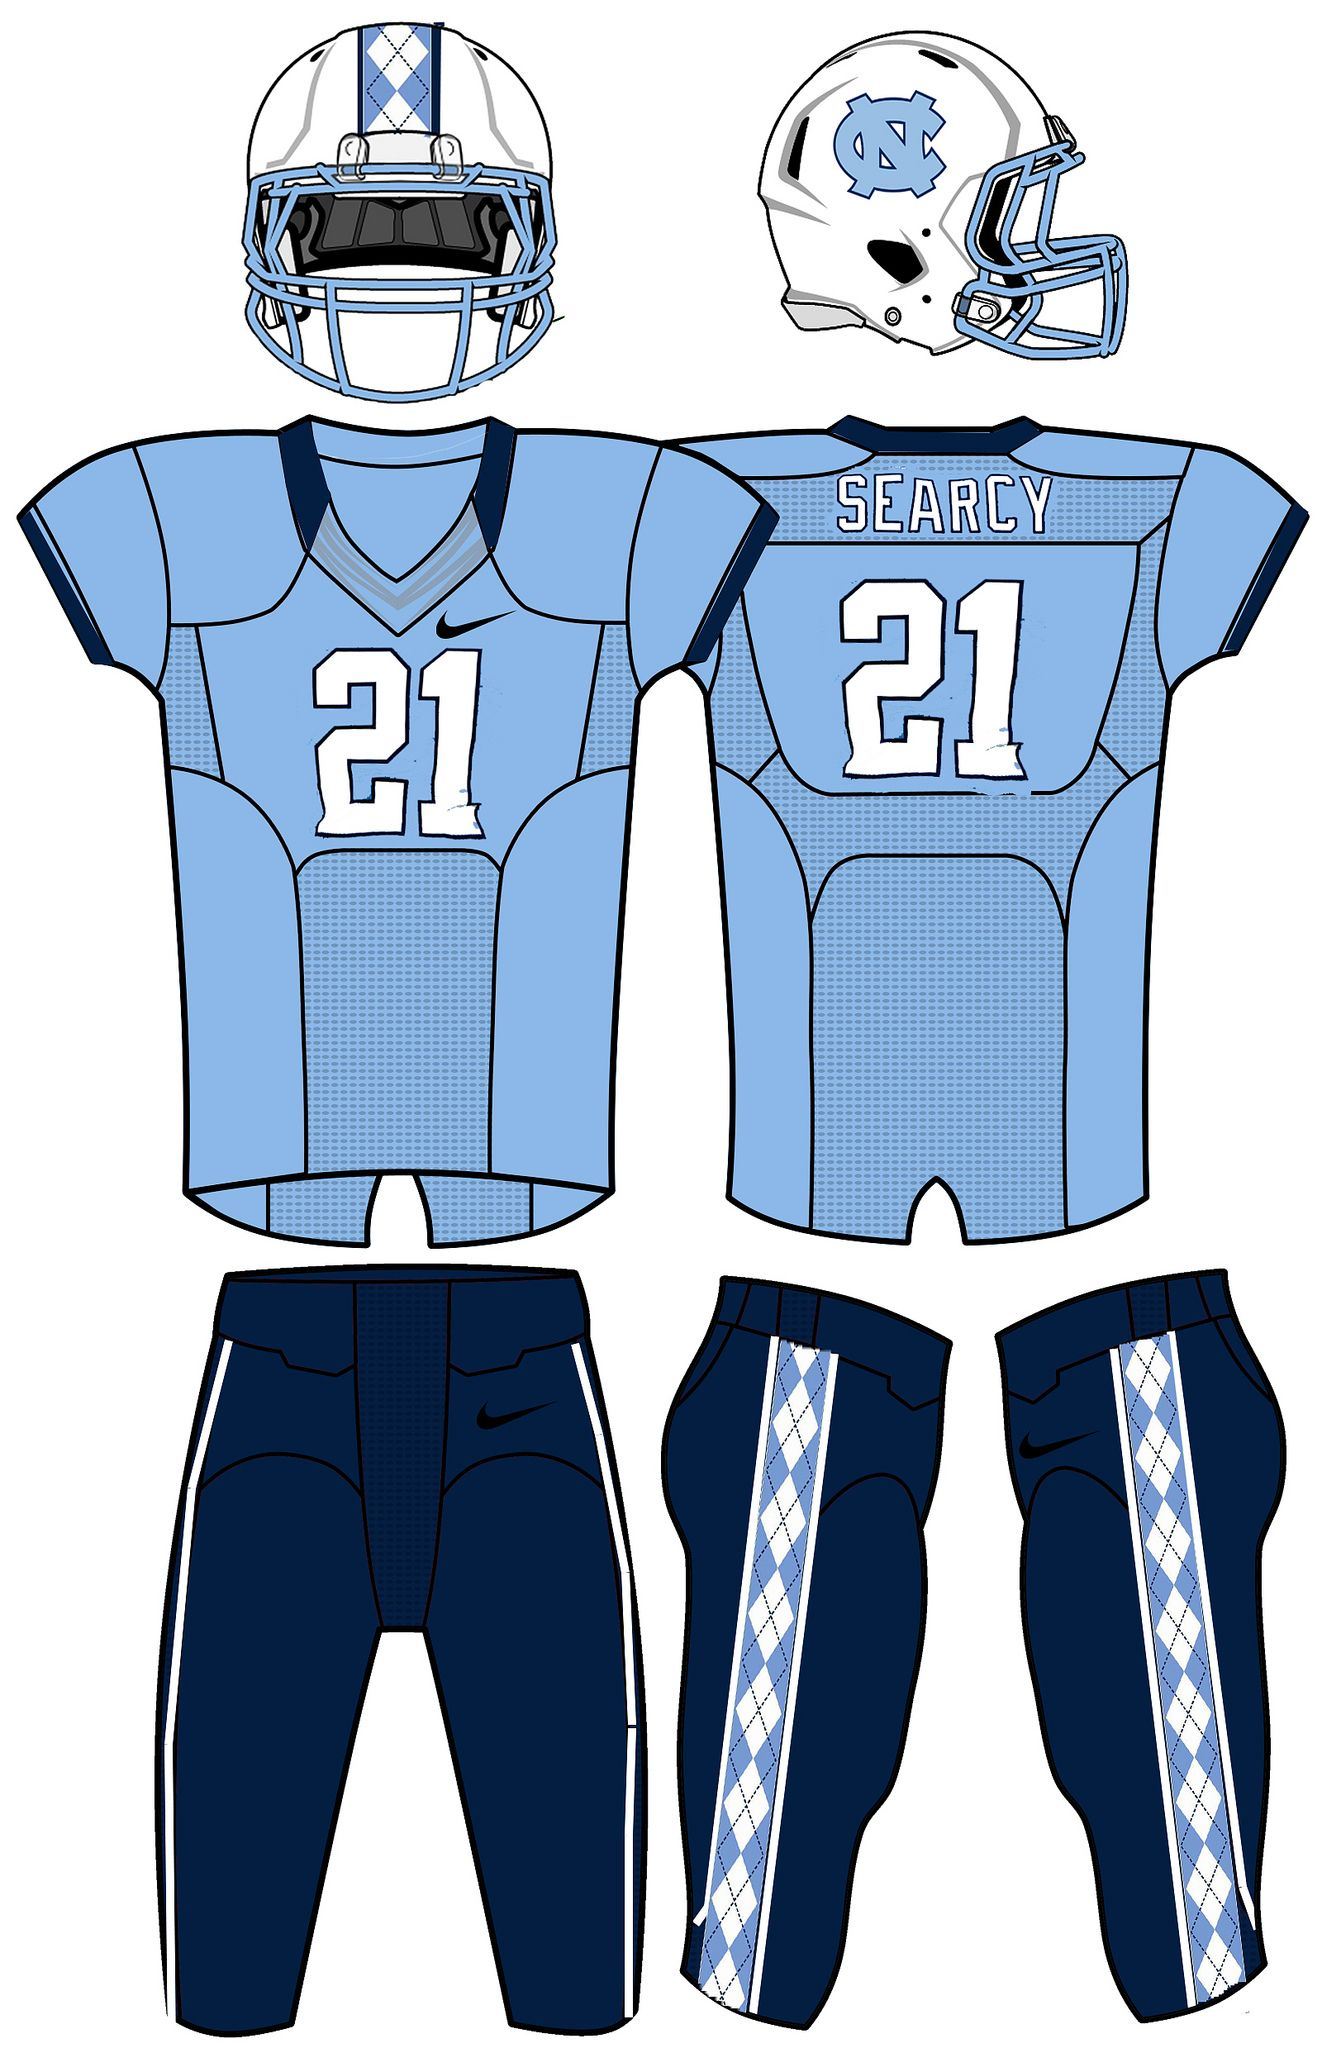 Unc Tar Heels Concepts All Uniforms Are Interchangeable